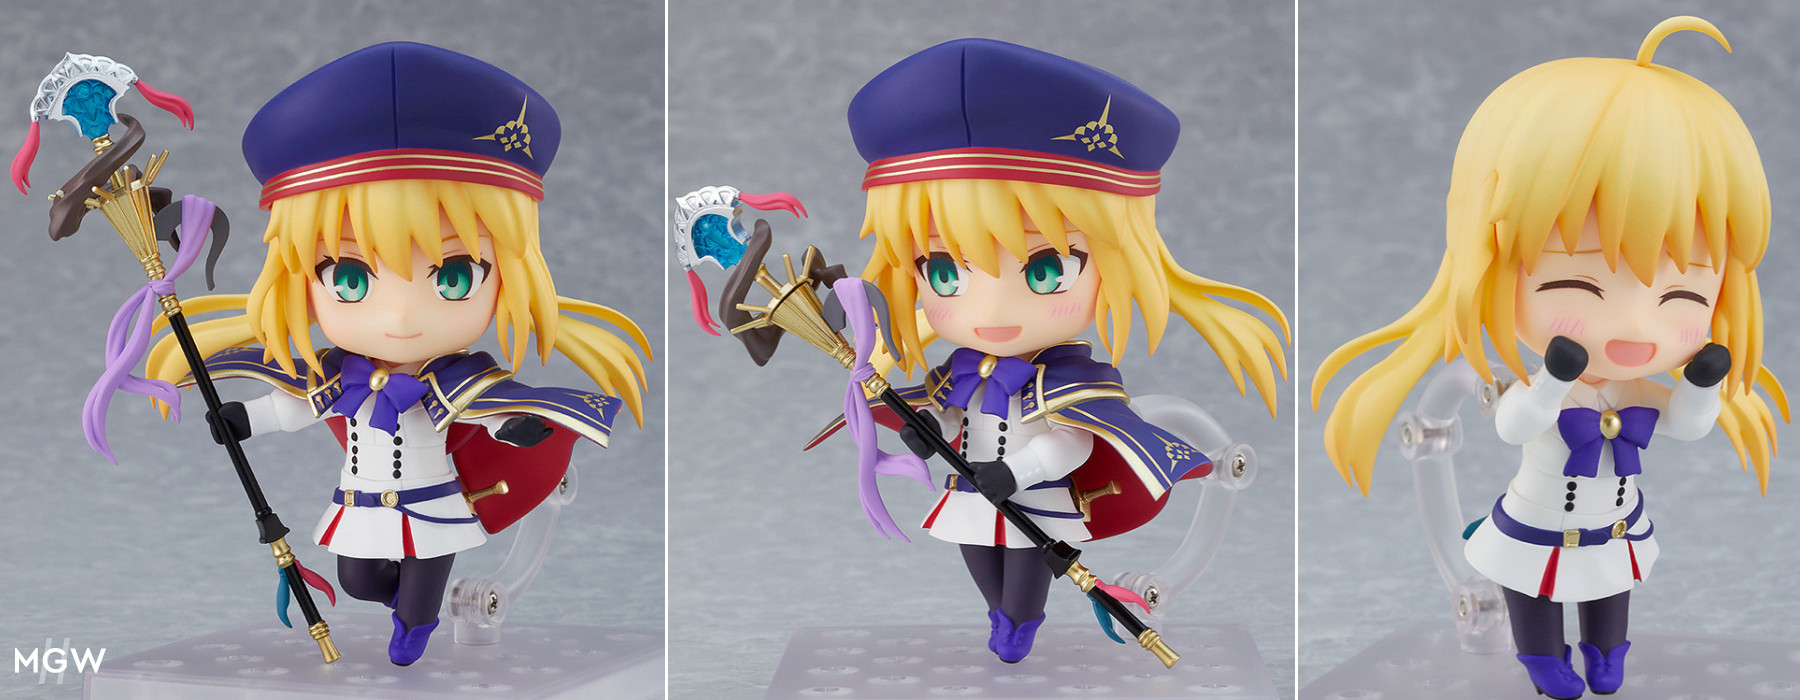 Nendoroid Caster Altria Caster by Good Smile Company from Fate Grand Order MyGrailWatch Anime Figure Guide